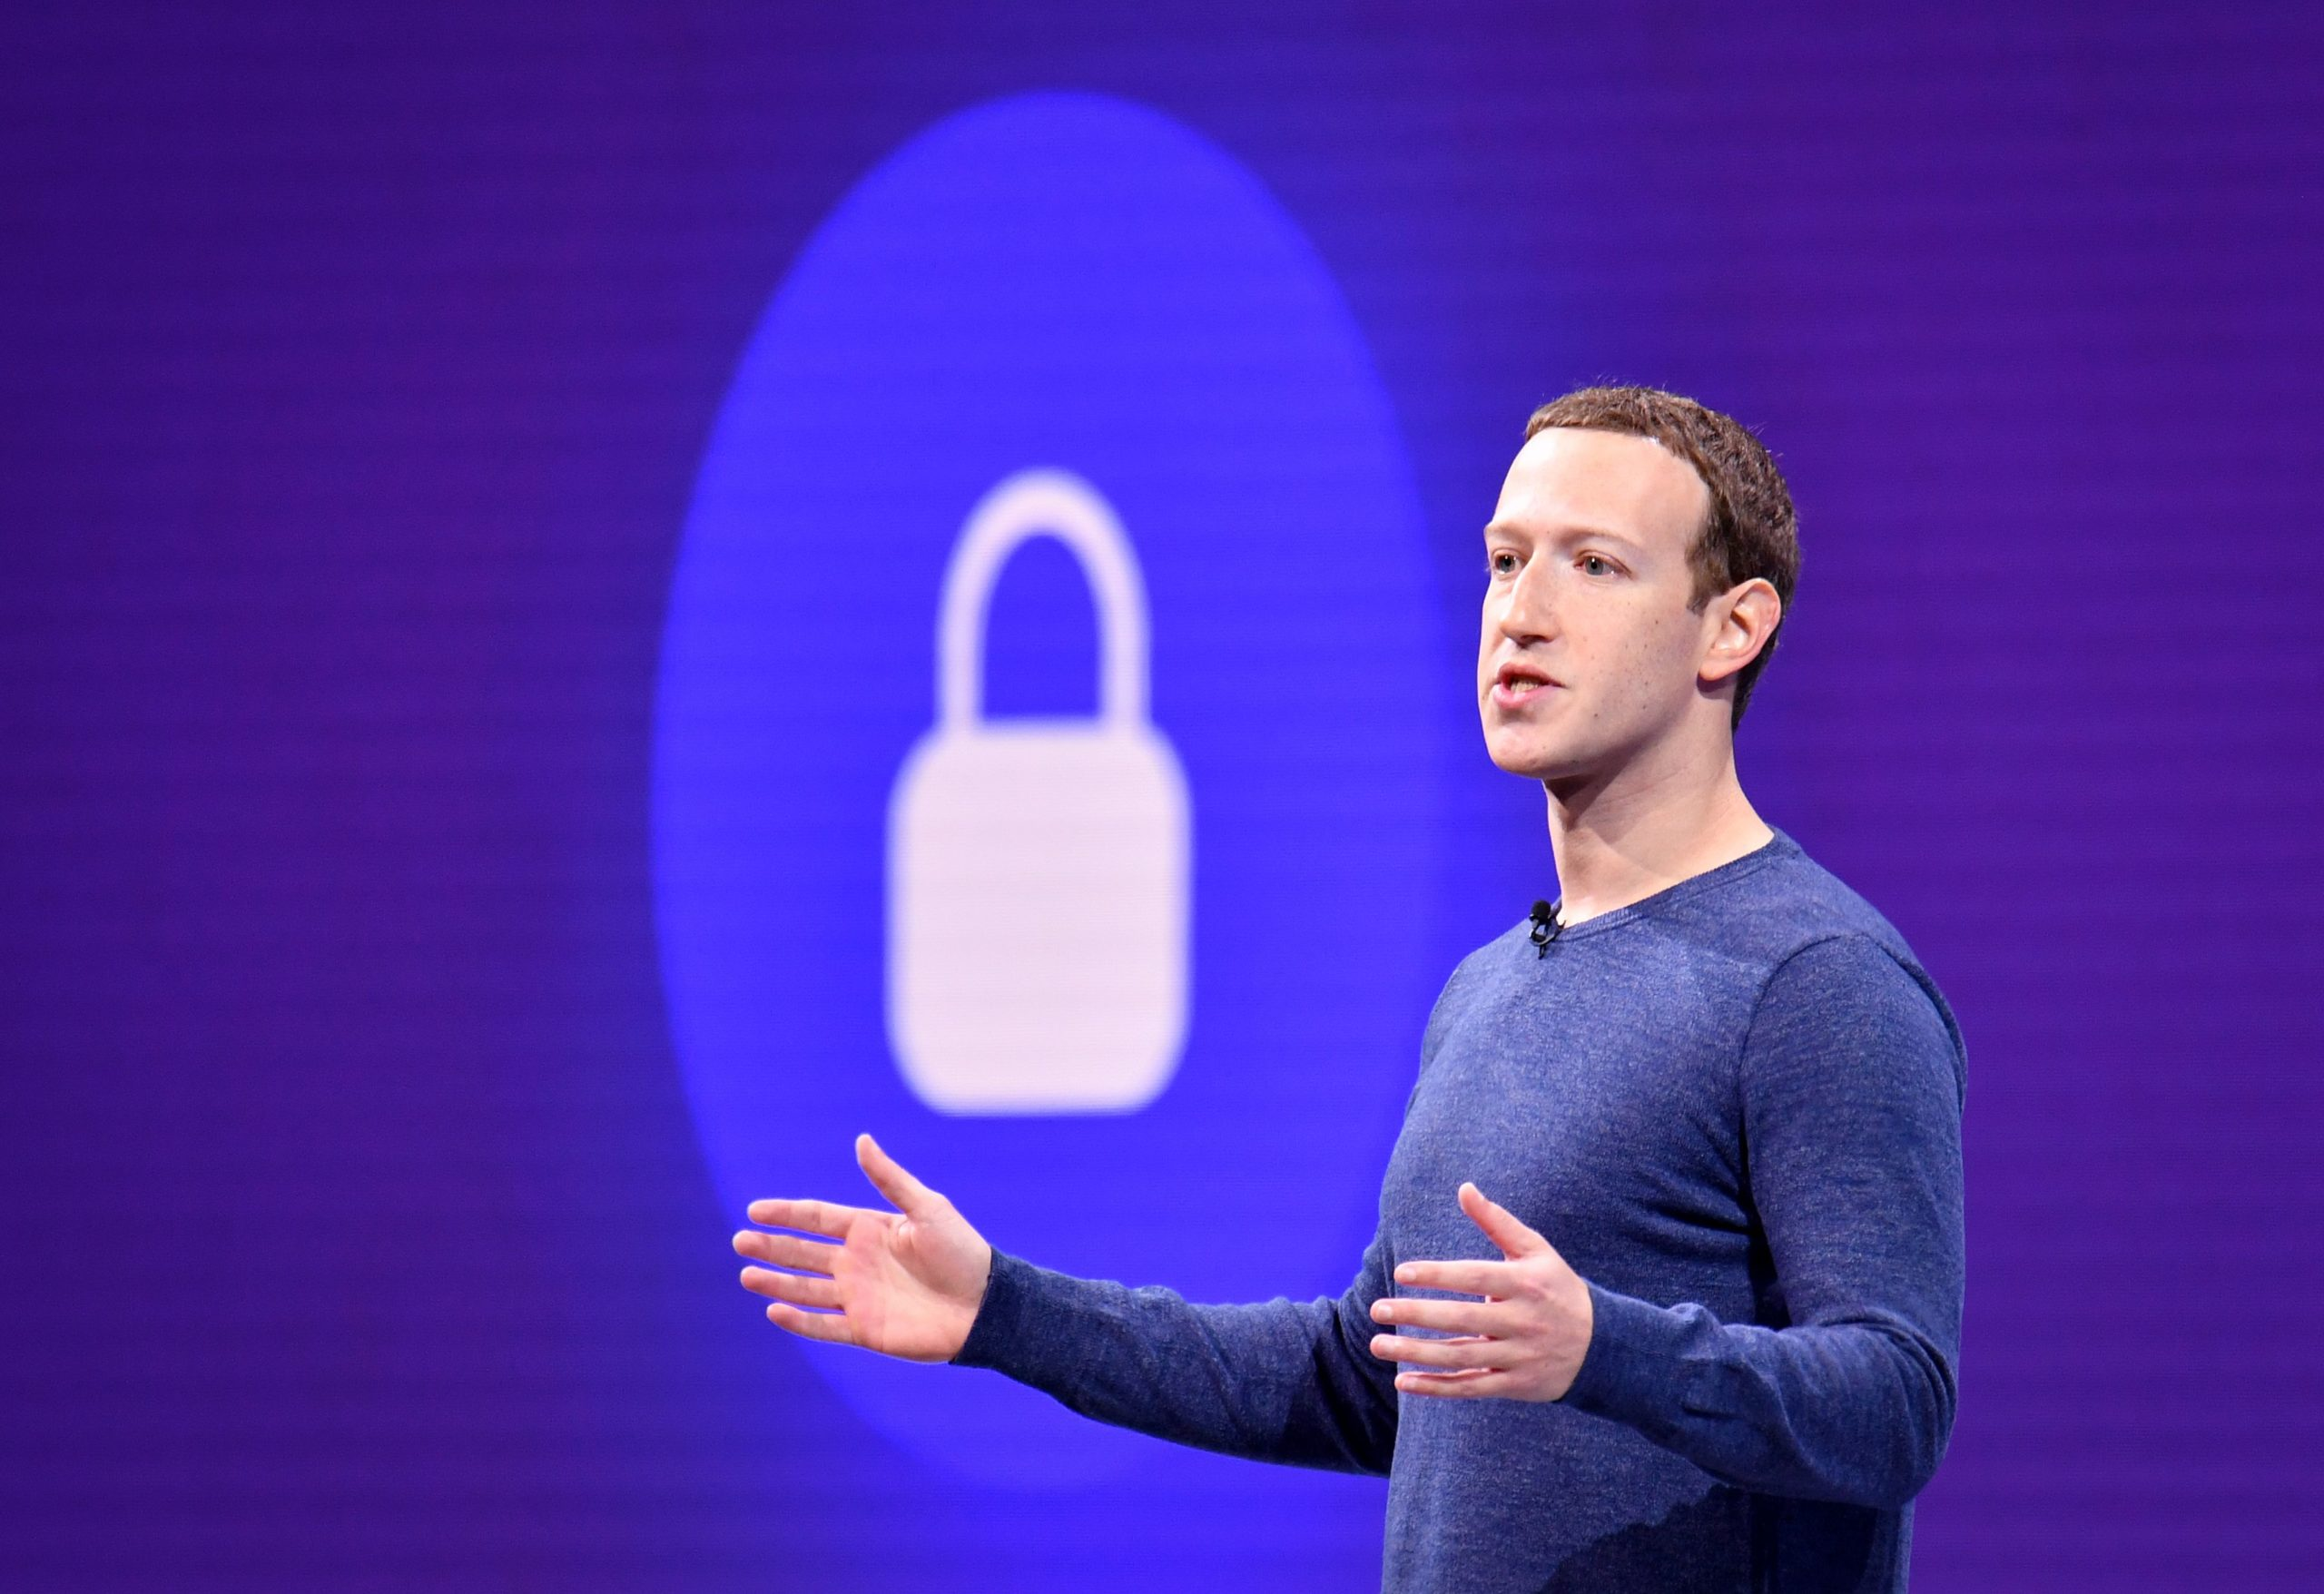 Facebook CEO Mark Zuckerberg speaks during the annual F8 summit at the San Jose McEnery Convention Center in San Jose, California on May 1, 2018. - Facebook chief Mark Zuckerberg announced the world's largest social network will soon include a new dating feature -- while vowing to make privacy protection its top priority in the wake of the Cambridge Analytica scandal. (Photo by JOSH EDELSON / AFP) (Photo credit should read JOSH EDELSON/AFP via Getty Images)